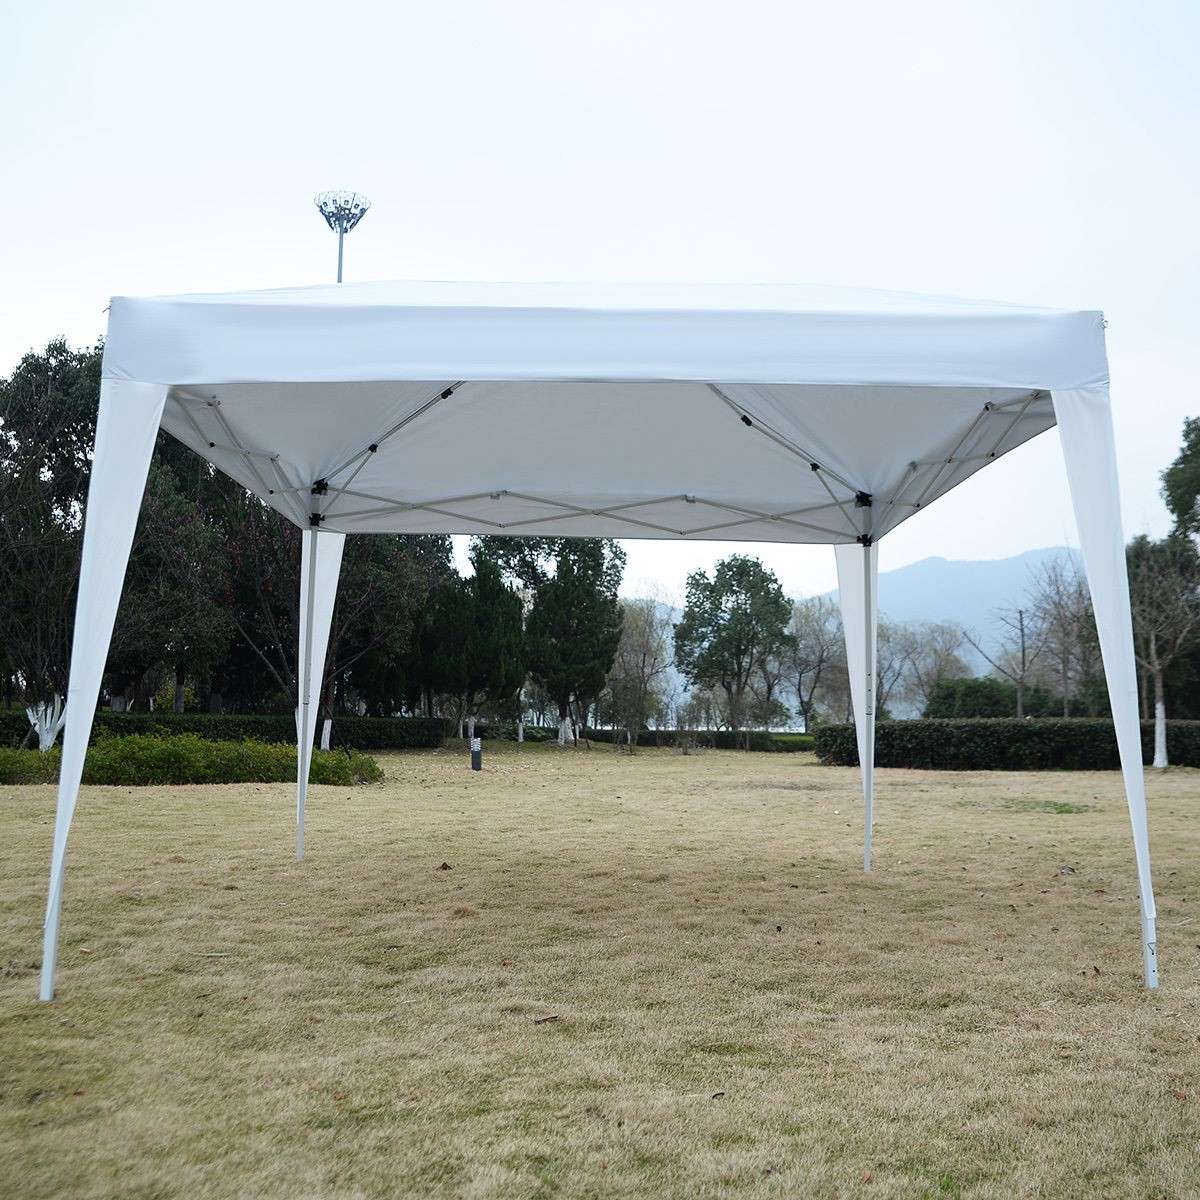 10 x 10 EZ Pop Up Canopy Tent White & 10 x 10 EZ Pop Up Canopy Tent Gazebo